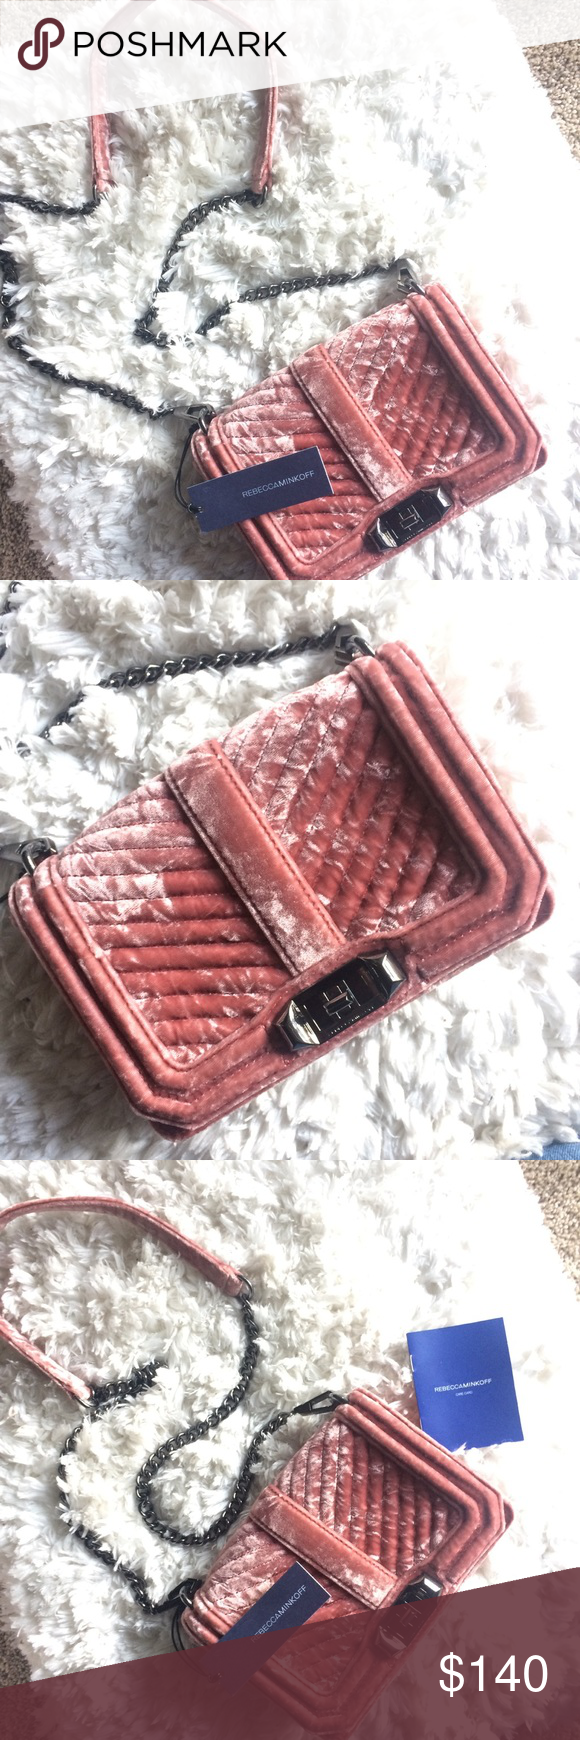 bc3391bd4cd5 Rebecca Minkoff Velvet Quilted Love Crossbody NWT Rebecca Minkoff Velvet  Chevron Quilted Small Love Crossbody in